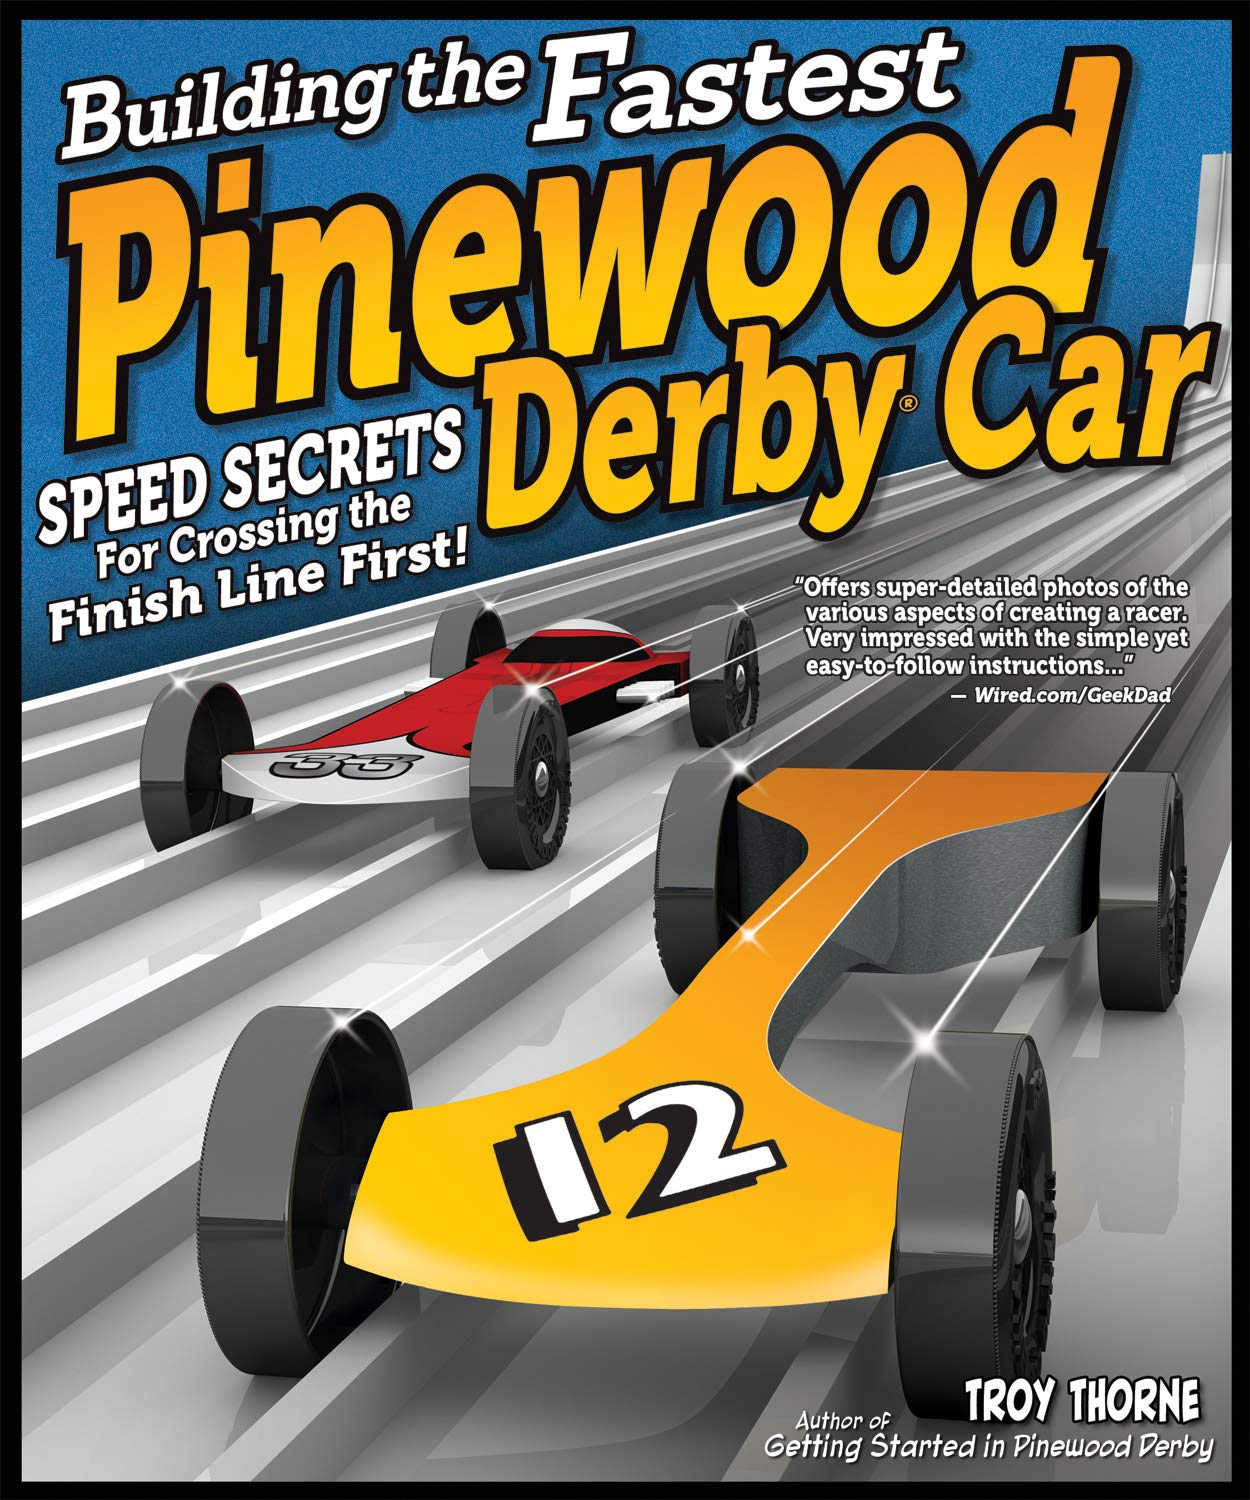 Image OfBuilding The Fastest Pinewood Derby Car: Speed Secrets For Crossing The Finish Line First! (English Edition)